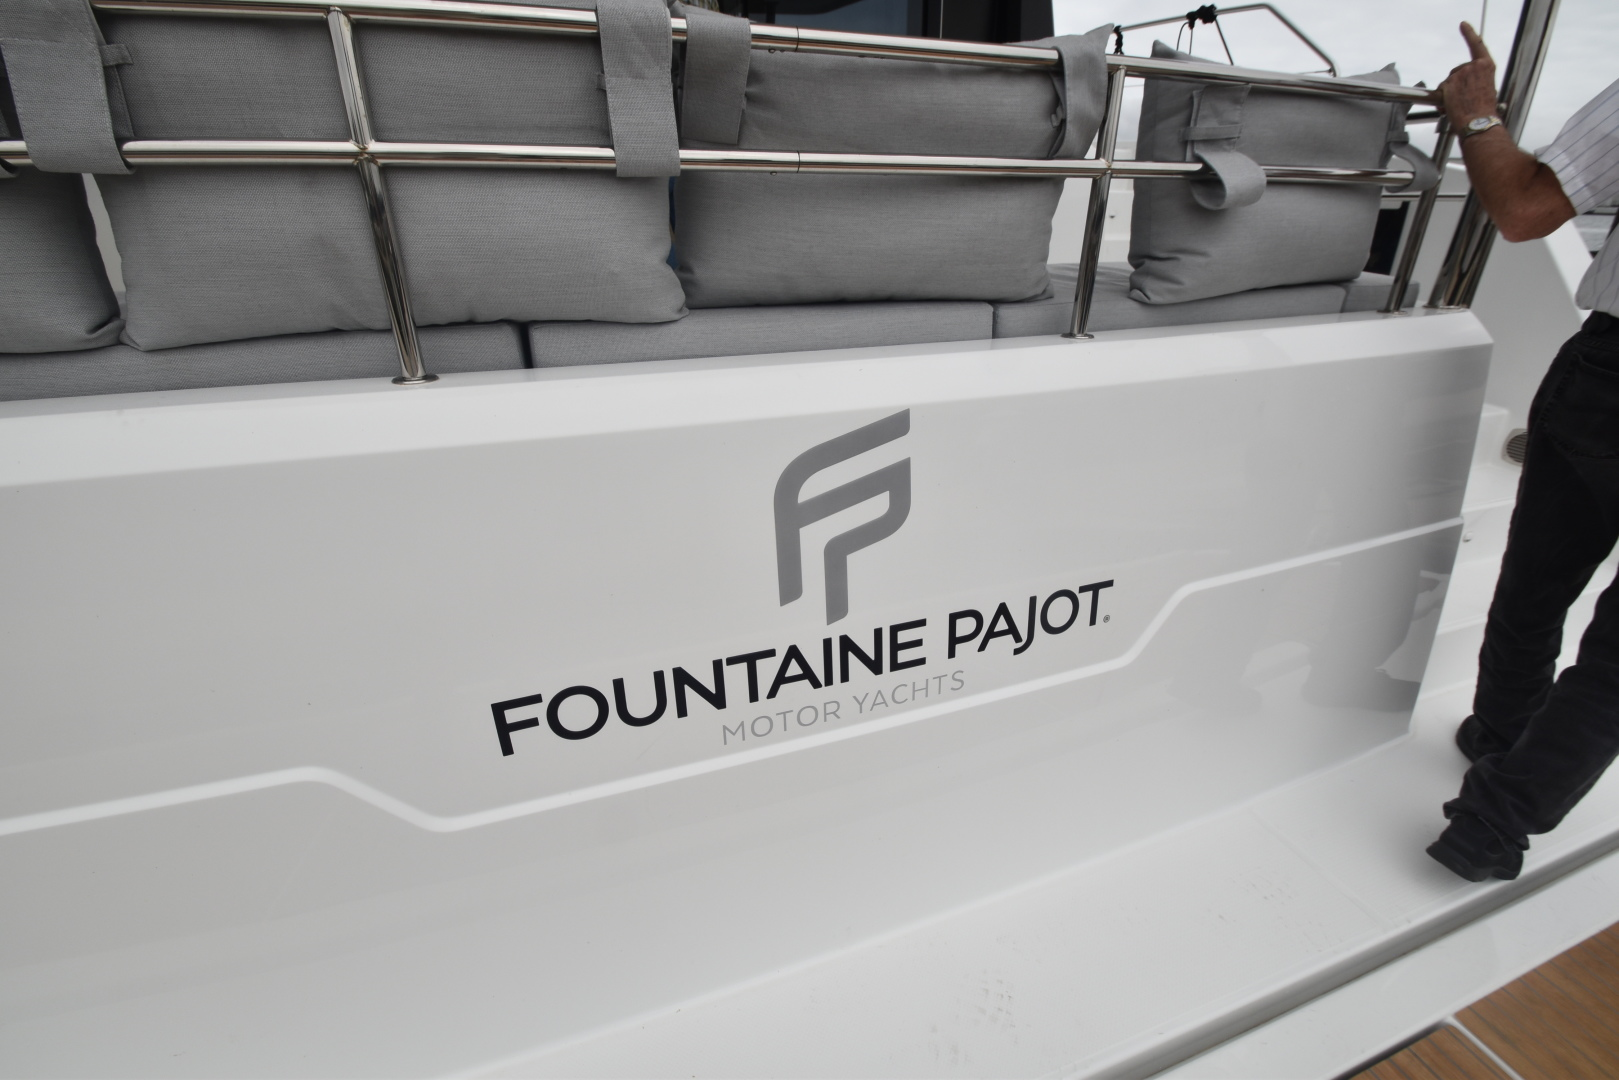 Fountaine Pajot-44 Motoryacht 2020-Miss Charlotte Louise Annapolis-Maryland-United States-1499454 | Thumbnail